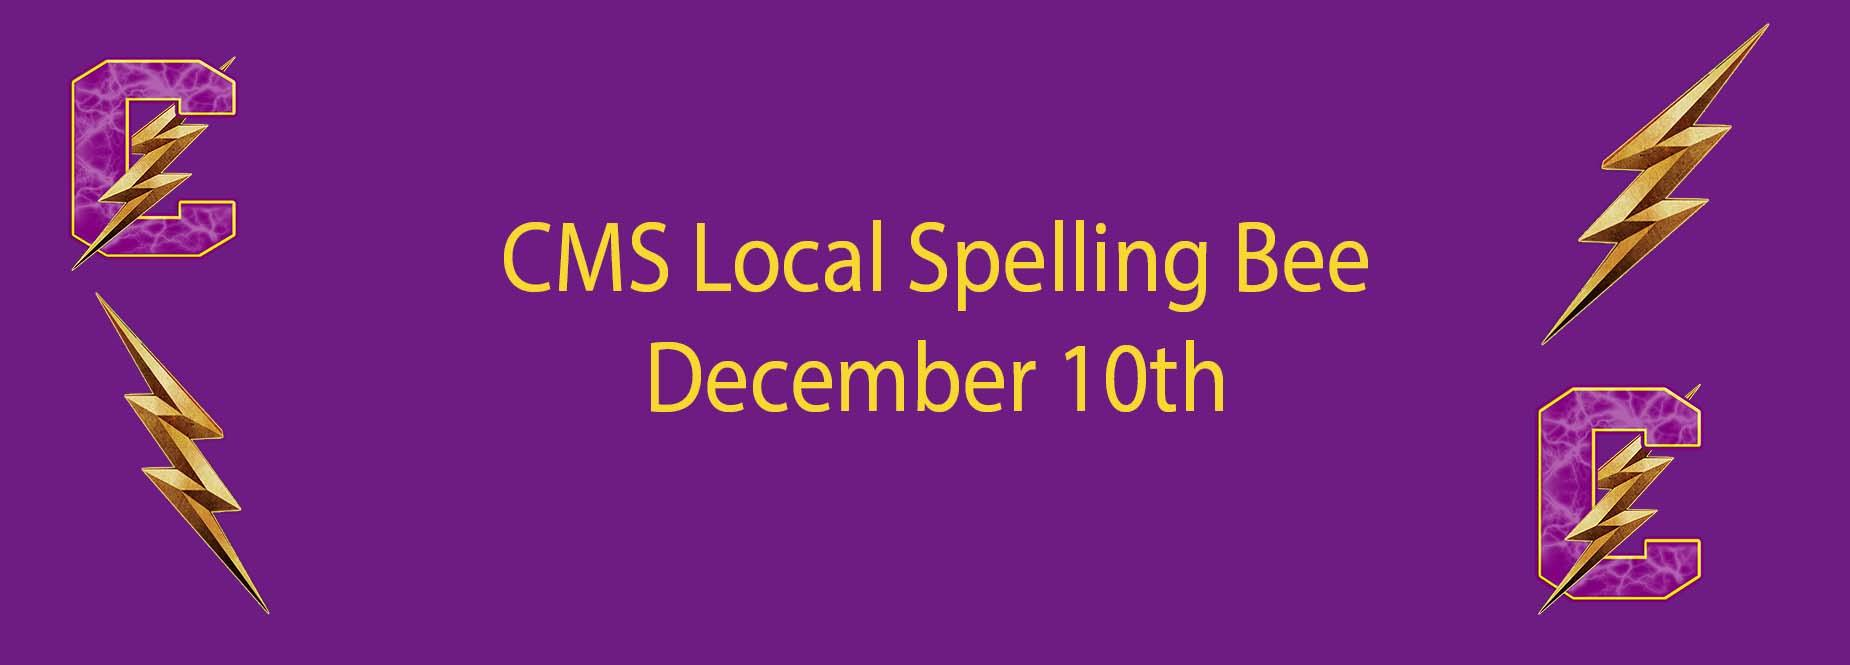 CMS Local Spelling Bee December 10th